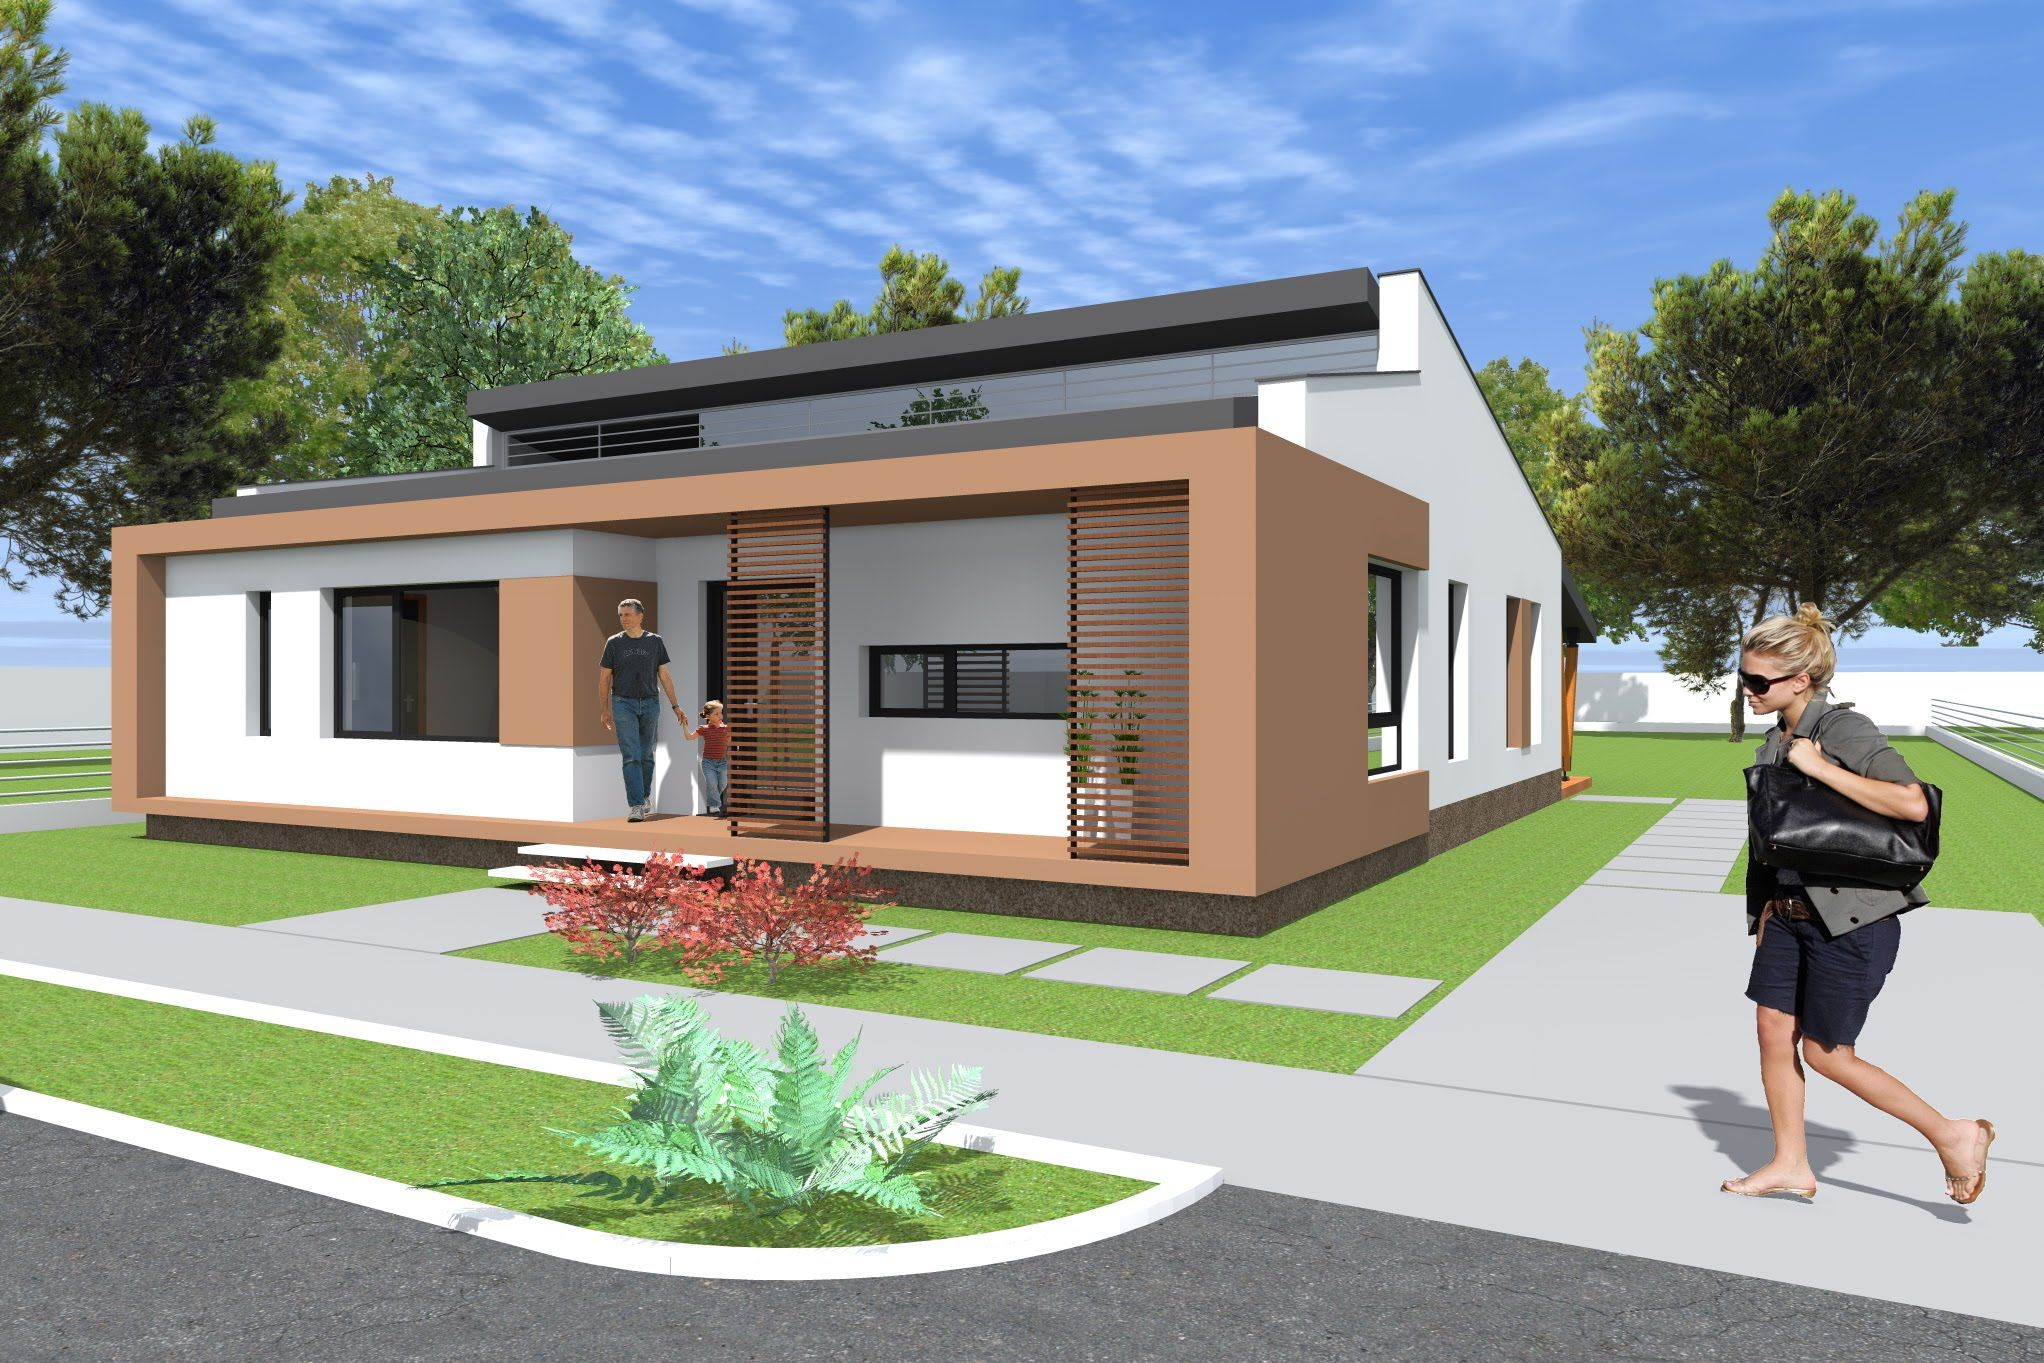 Small modern bungalow house design 133 square meters 1431 sq feet arc